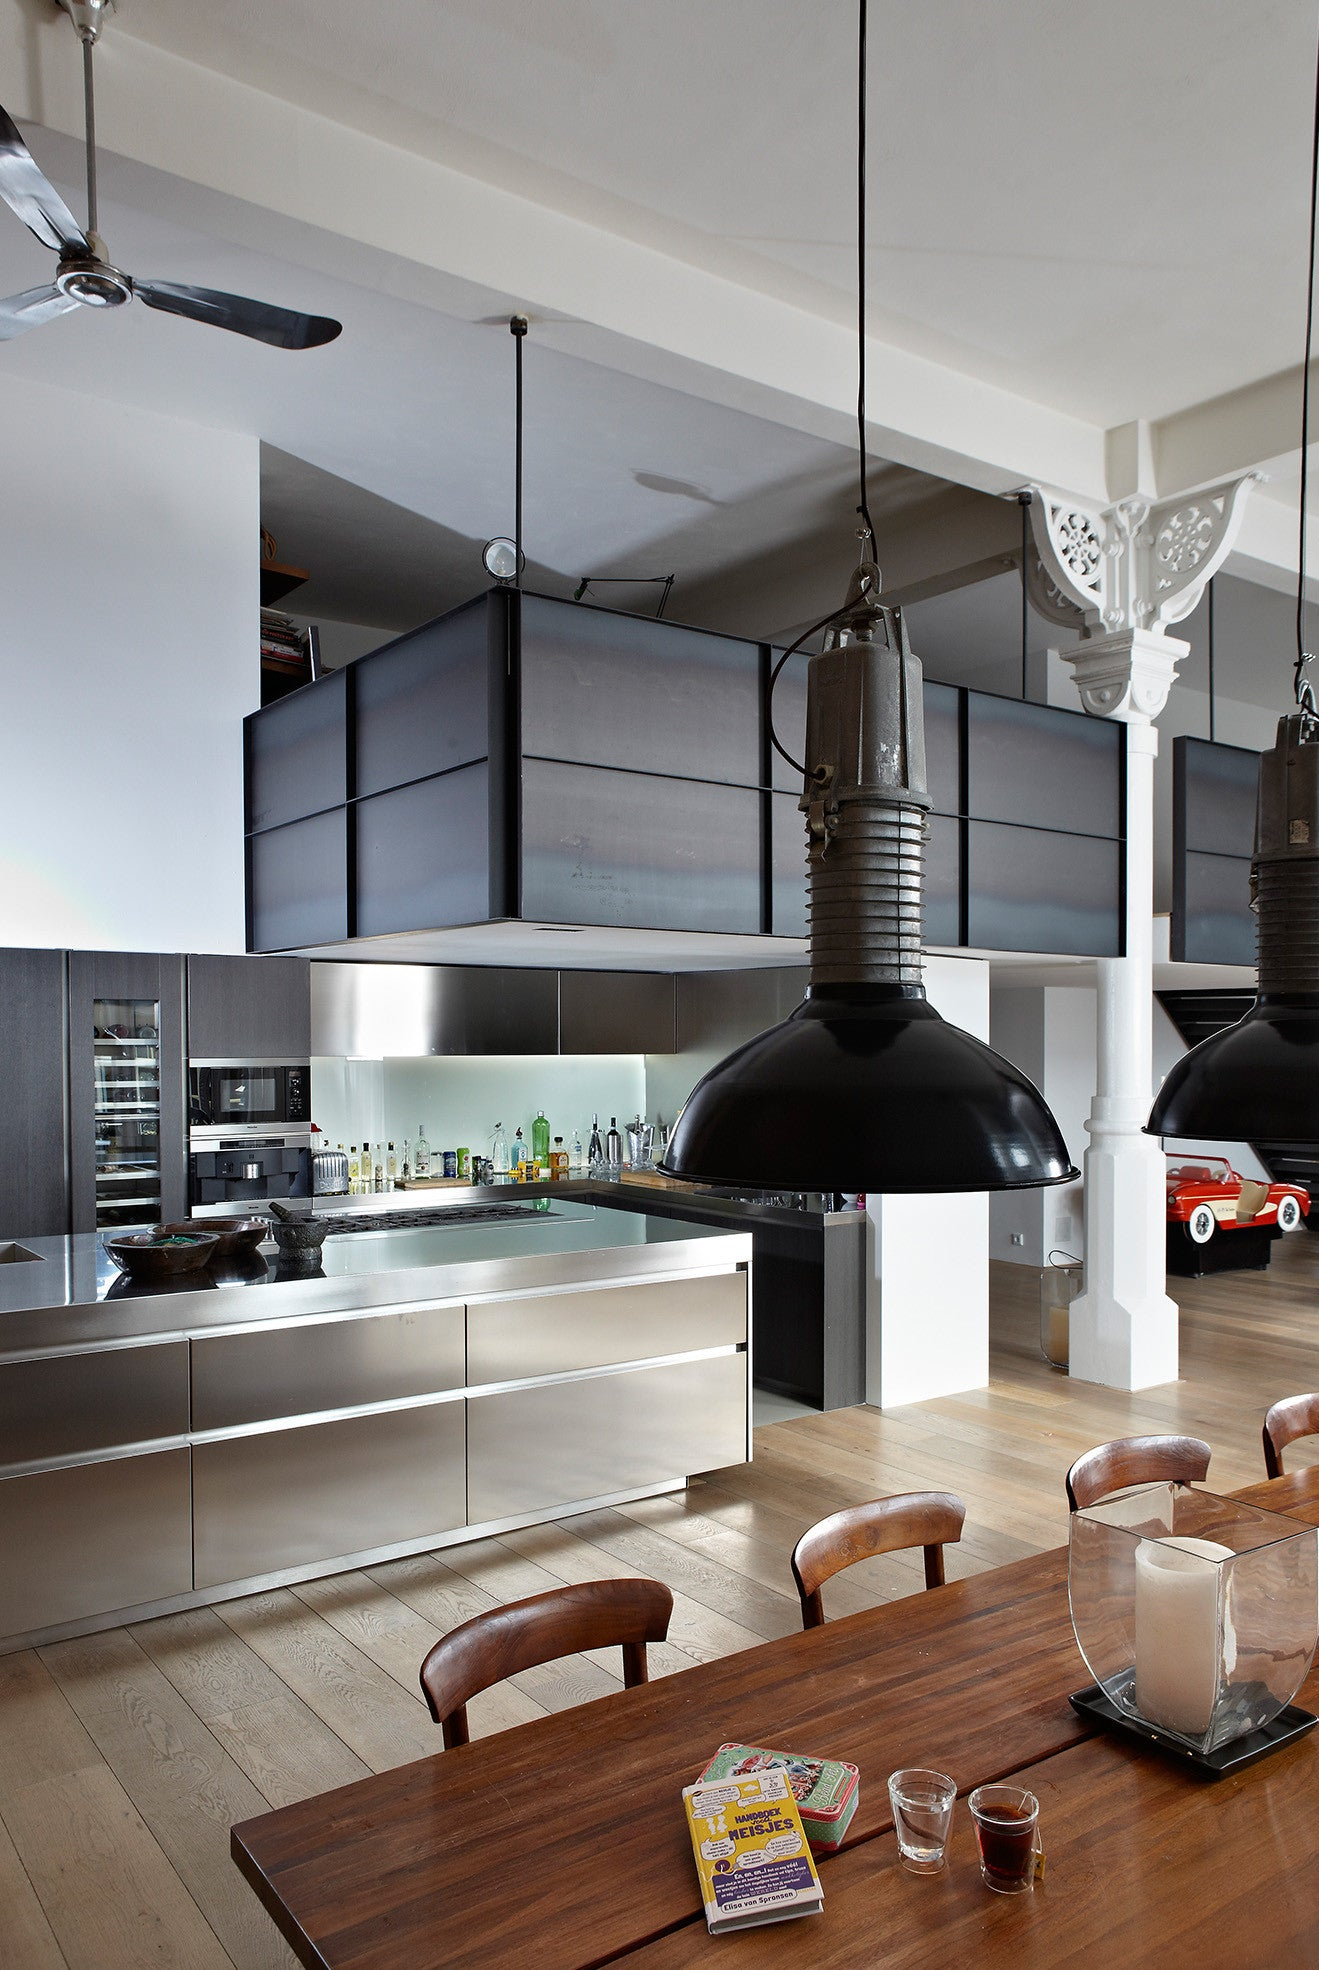 open plan stainless steel kitchen with industrial style suspended mezzanine floor